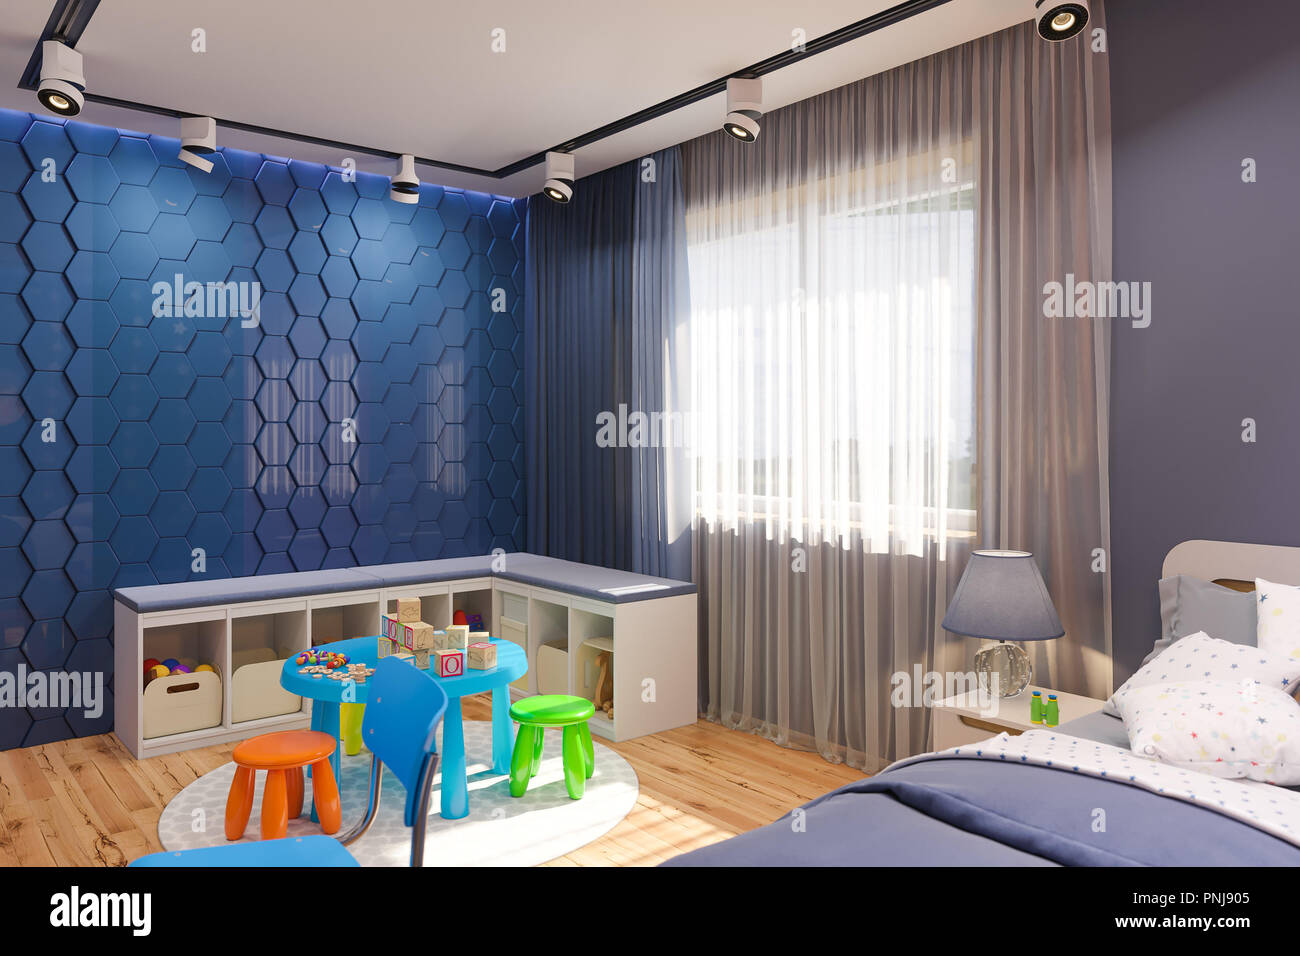 3d Render Of The Children S Bedroom In Deep Blue Color Visualization Of The Concept Of Interior Design Kids Room For Boy In A Space Theme Stock Photo Alamy